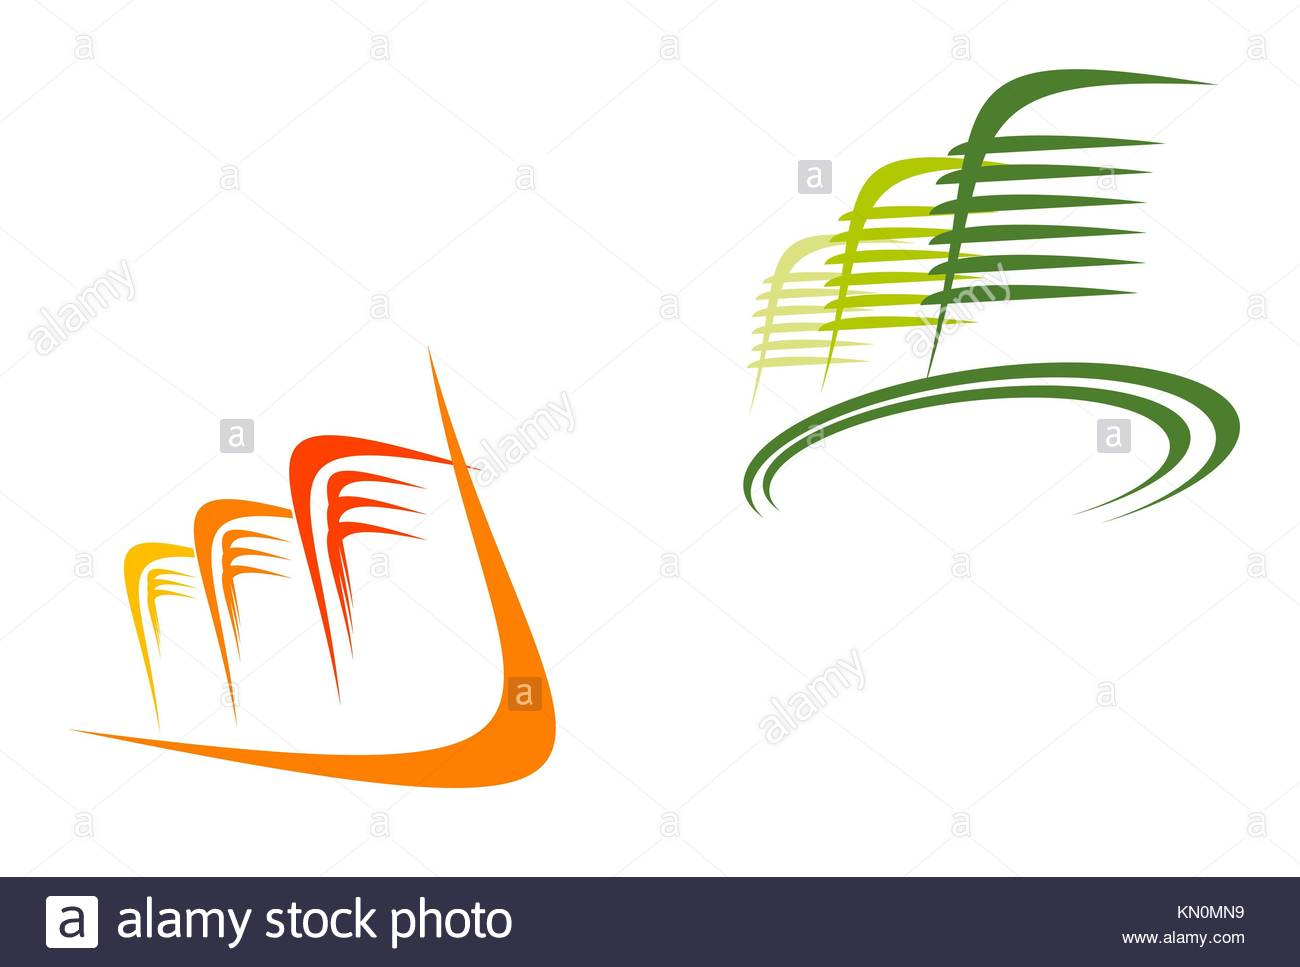 Real Estate Symbols For Design And Decorate Stock Photo 167817365